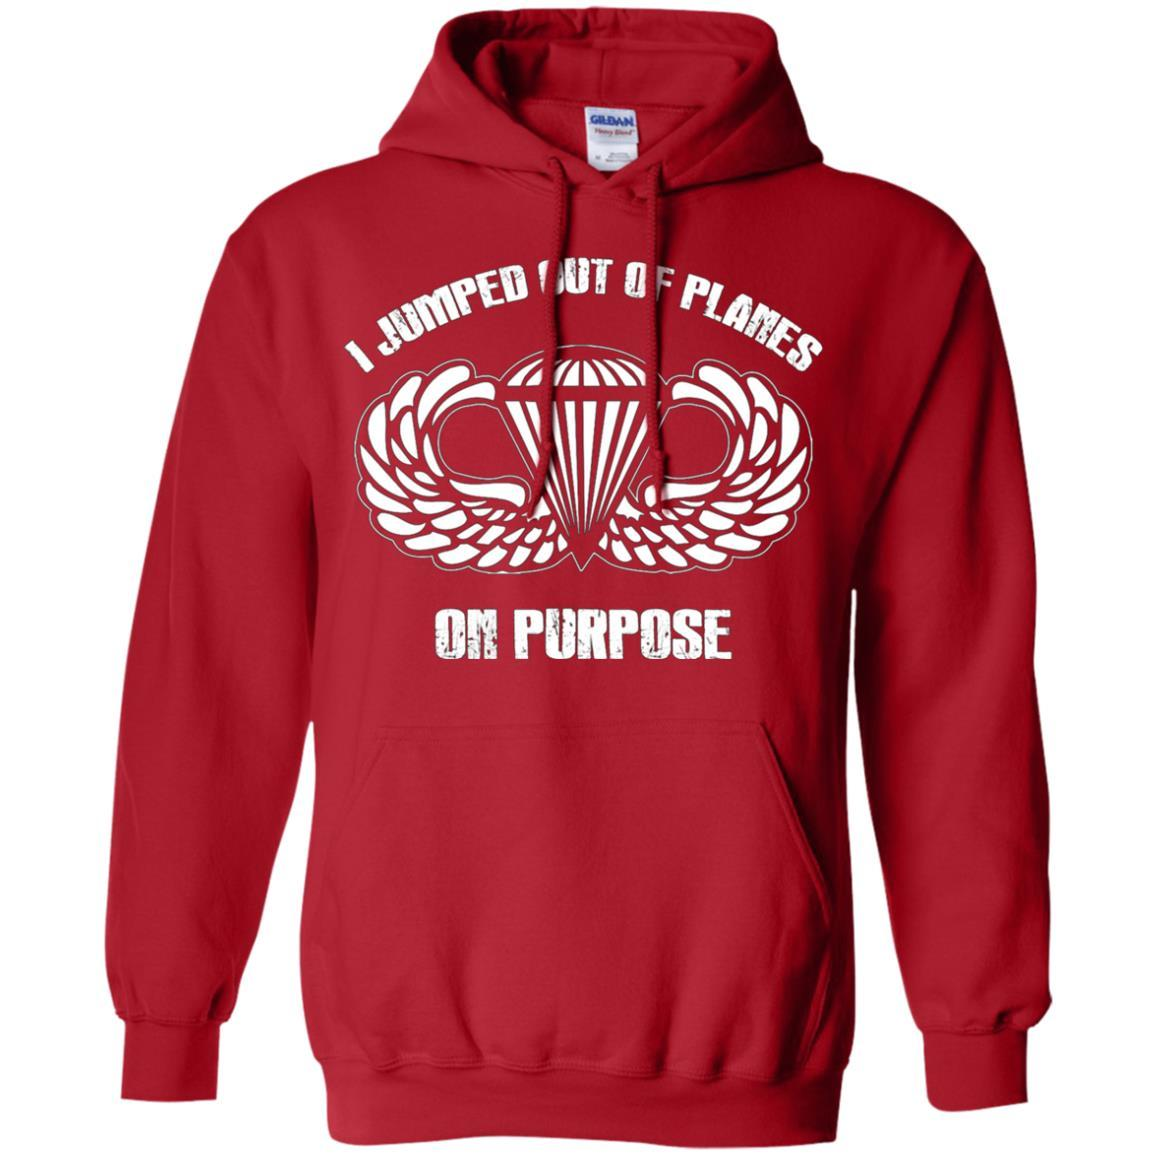 I jumped out of planes on purpose, Airborne - Pullover Hoodie Red / 5XL